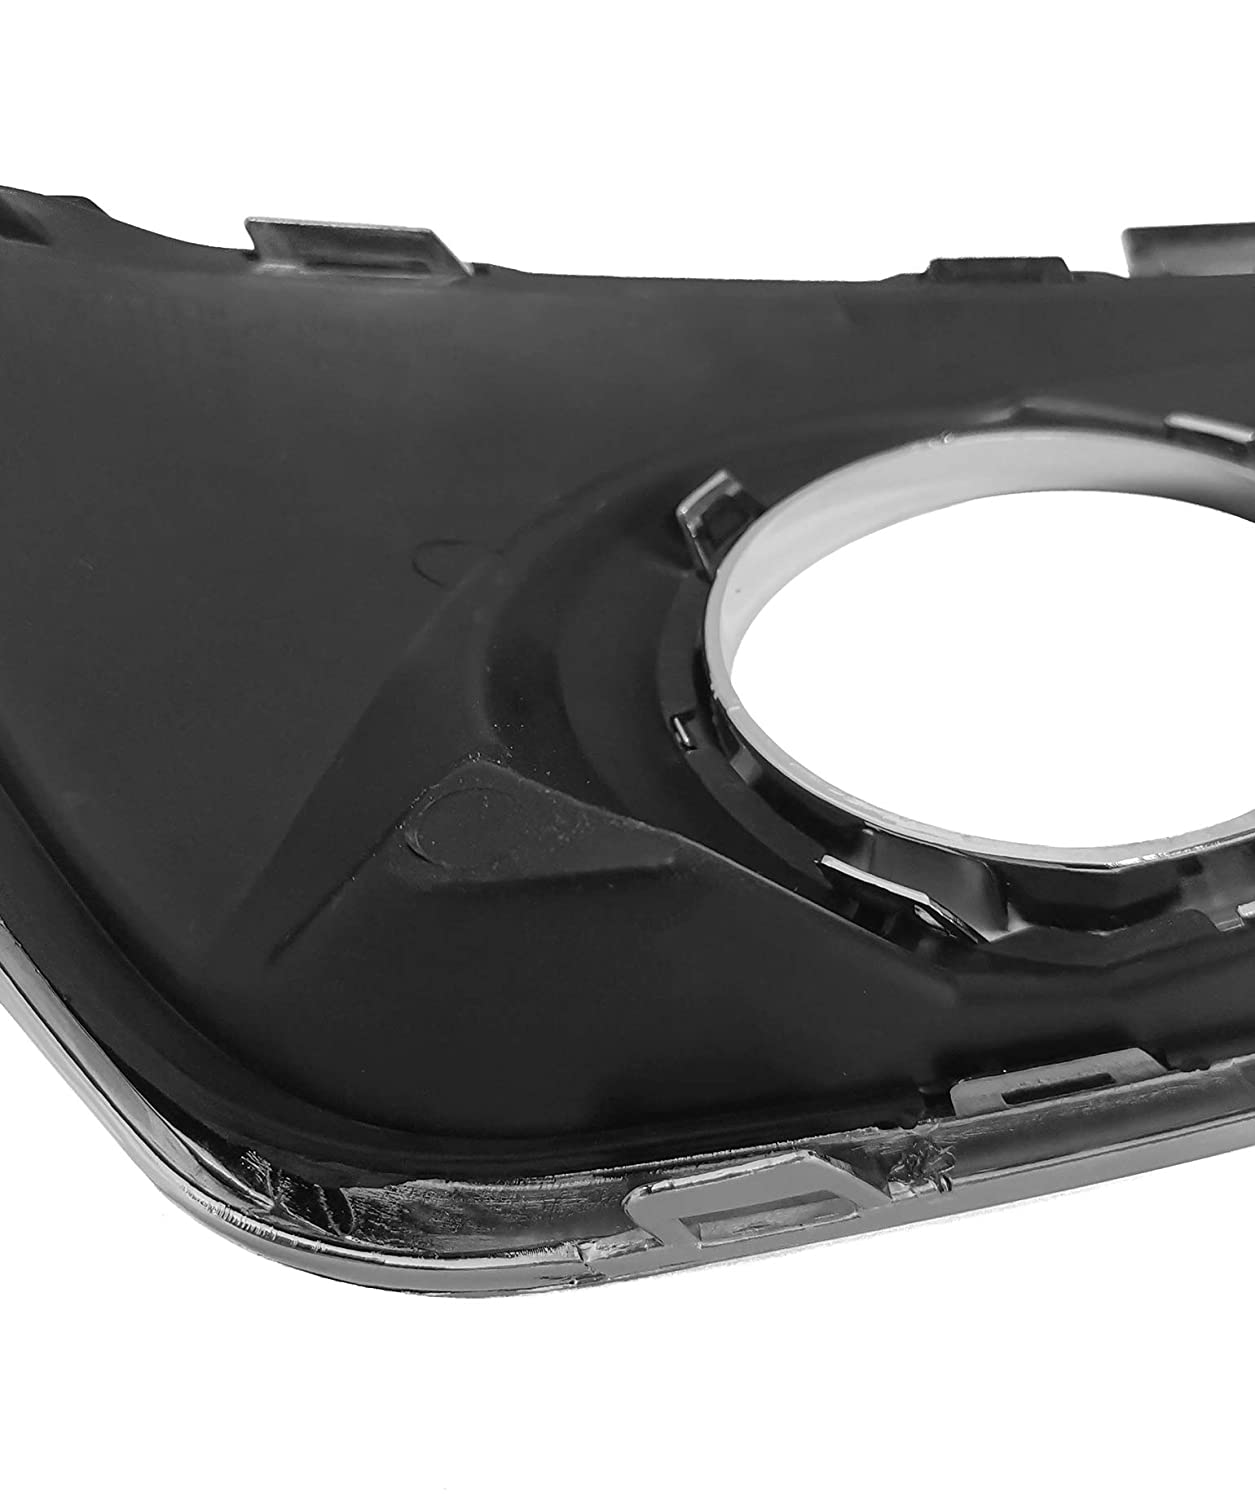 Landrol Driver Side Front Driving Bumper Black Fog Light Covers Exterior Replacement Trim Bezel w//Hole w//Out Fog Lamps Compatible fit for Chevrolet Malibu 2012-2015 with chrome strip